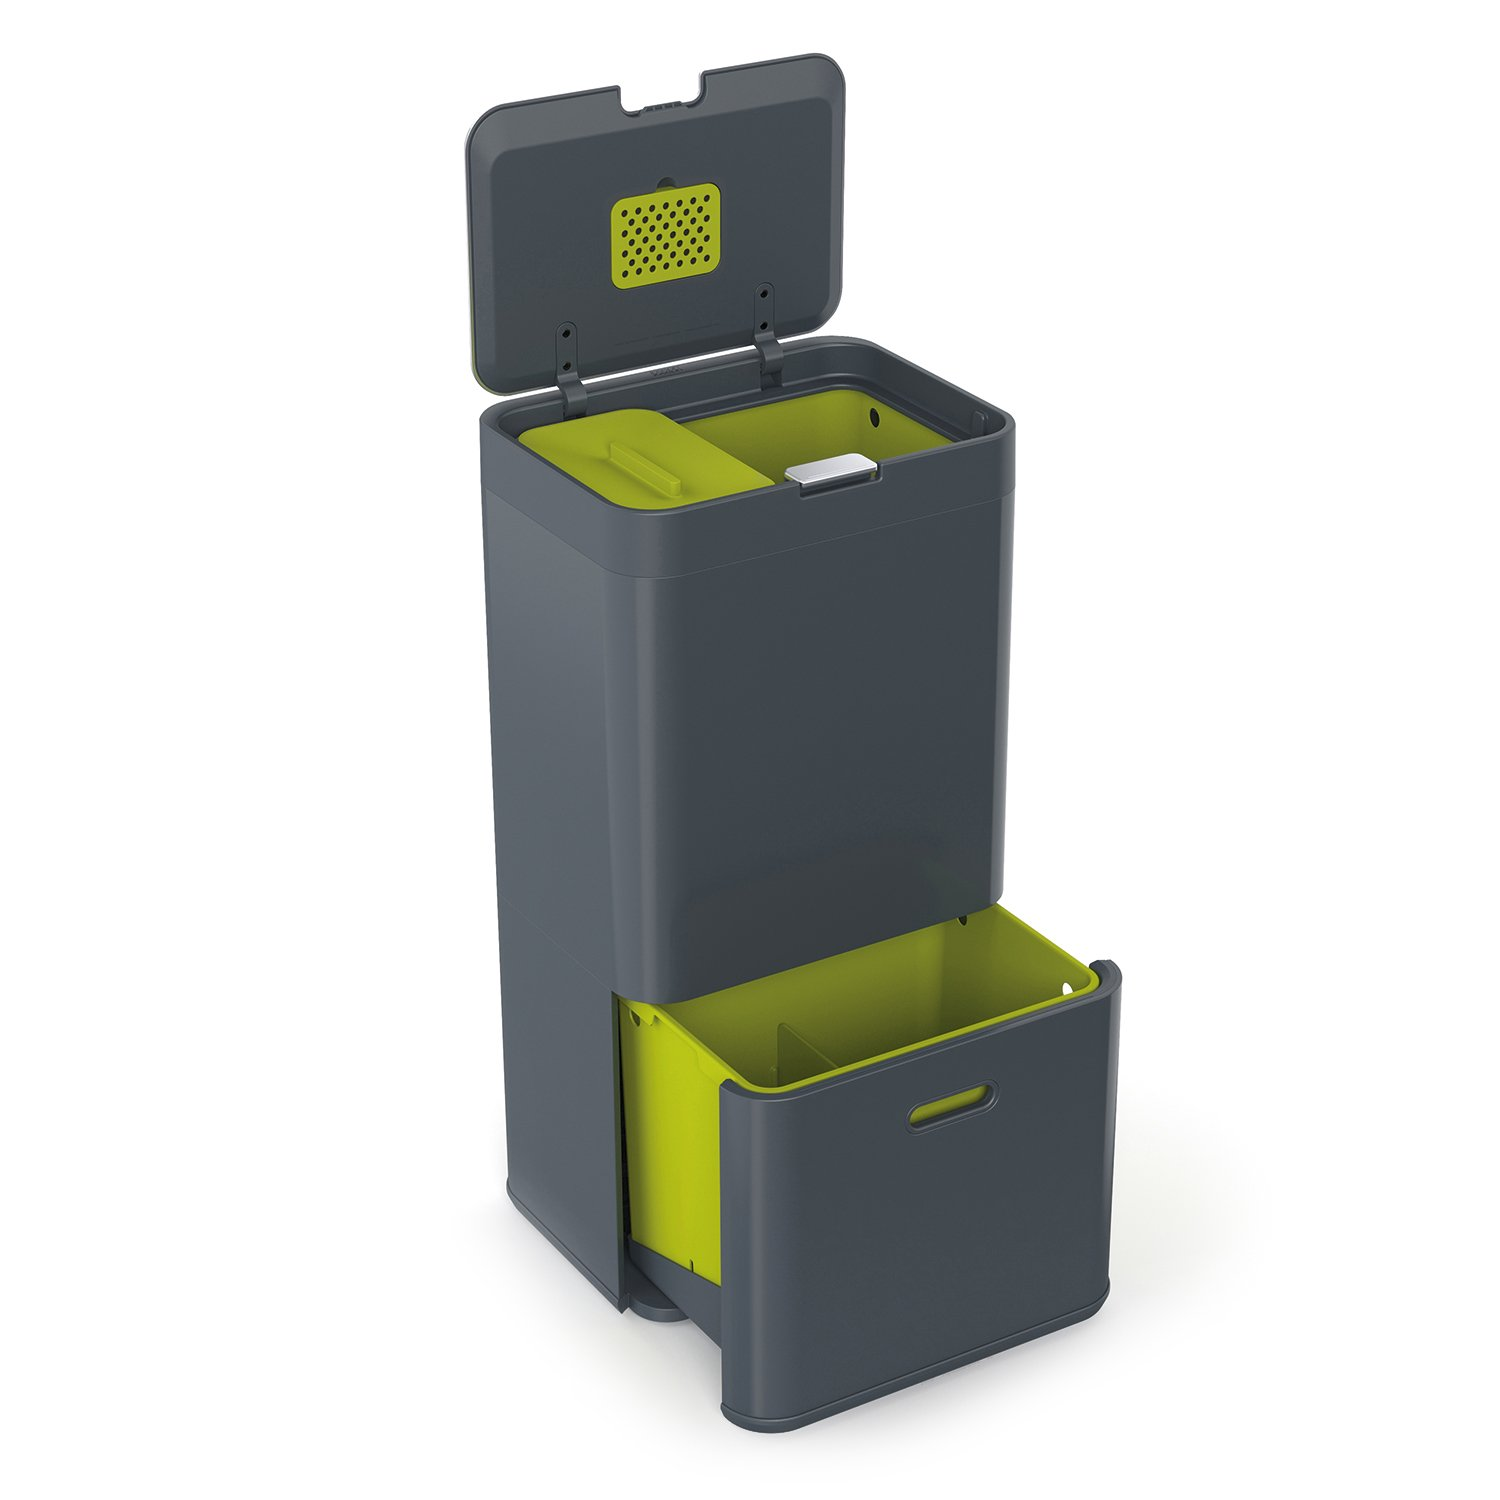 Joseph Joseph 30002 Intelligent Waste Totem Kitchen Trash Can and Recycle Bin Unit with Compost Bin, 16-gallon, Gray